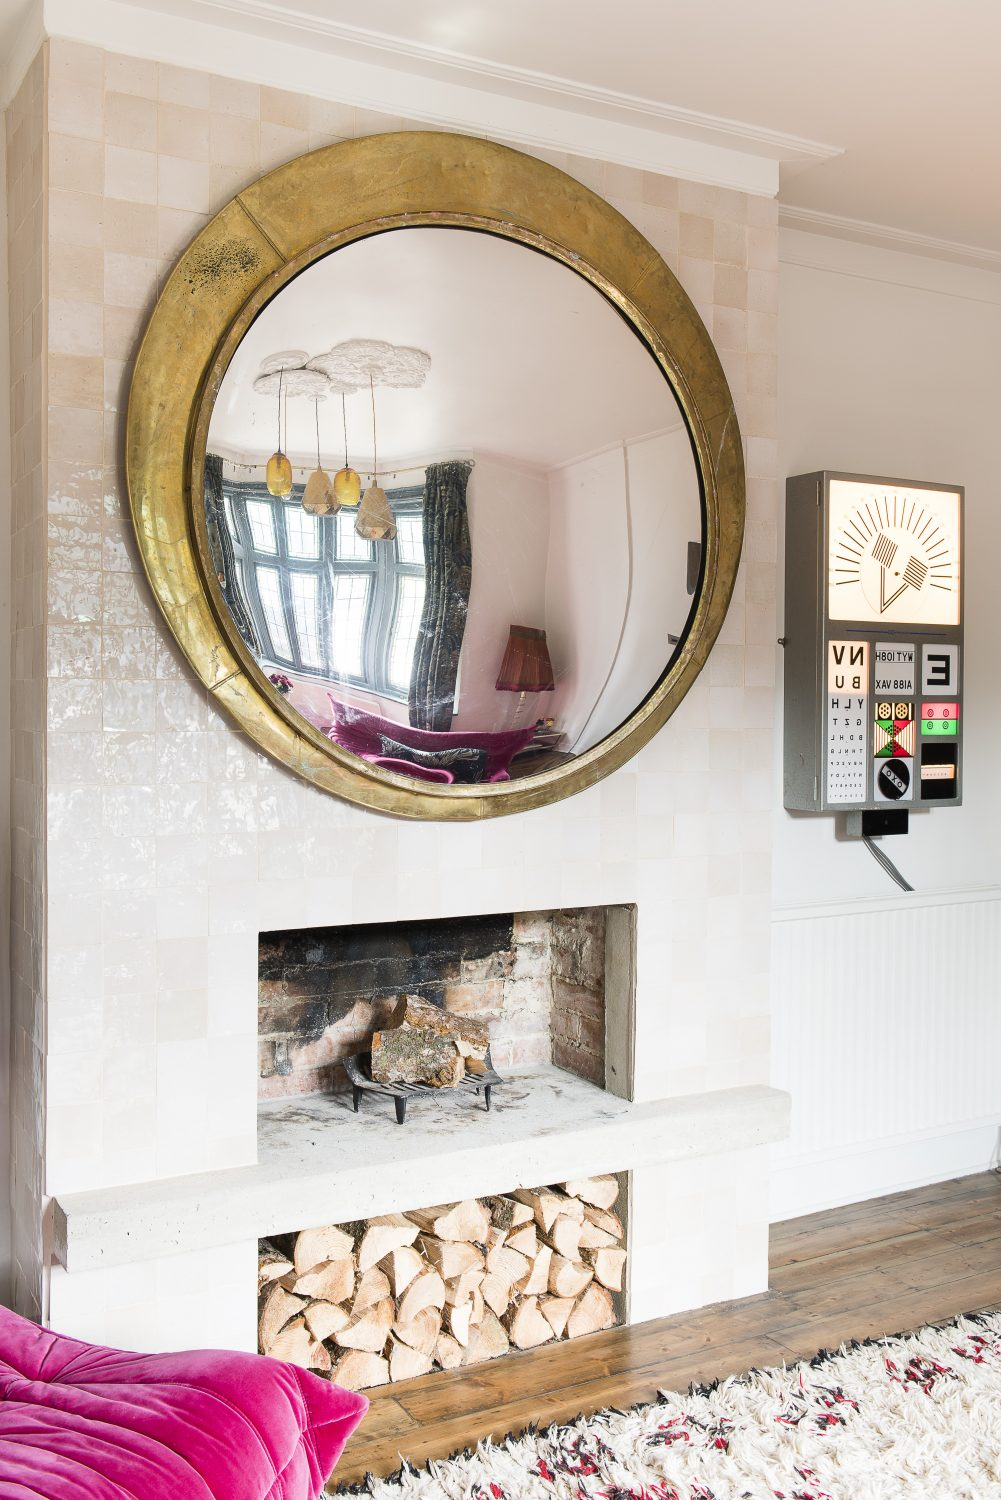 A reproduction of a Czech railway convex mirror, prints by Ben Eine and a fully working old electronic eye test found at a French market decorate the sitting room This page: The photograph is by fashion photographer, Alex Prager. The kitchen cupboard door handles are from Buster + Punch